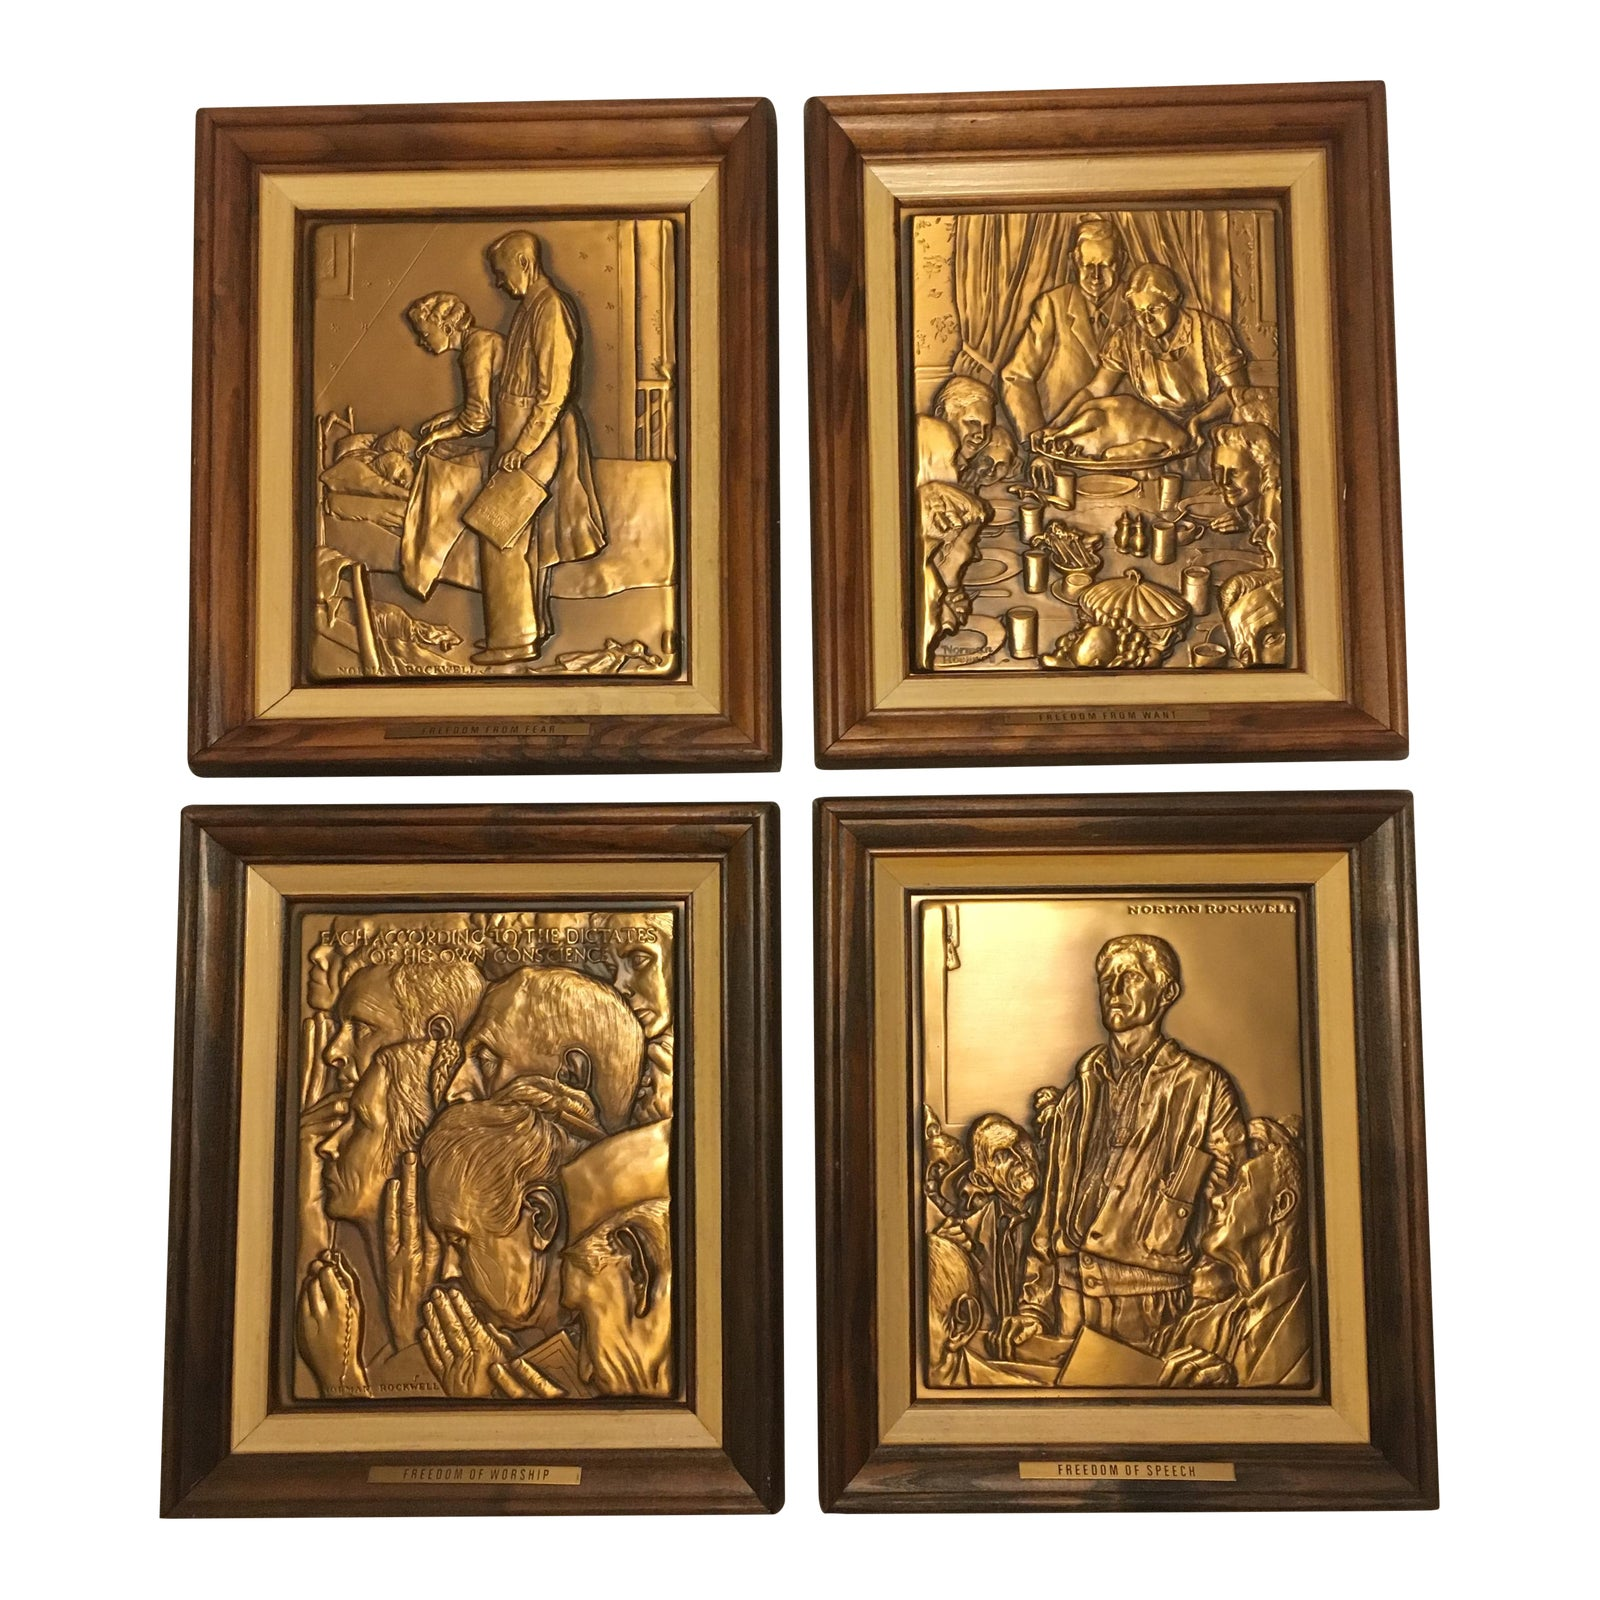 Bronze Norman Rockwell Four Freedoms Plaques Chairish